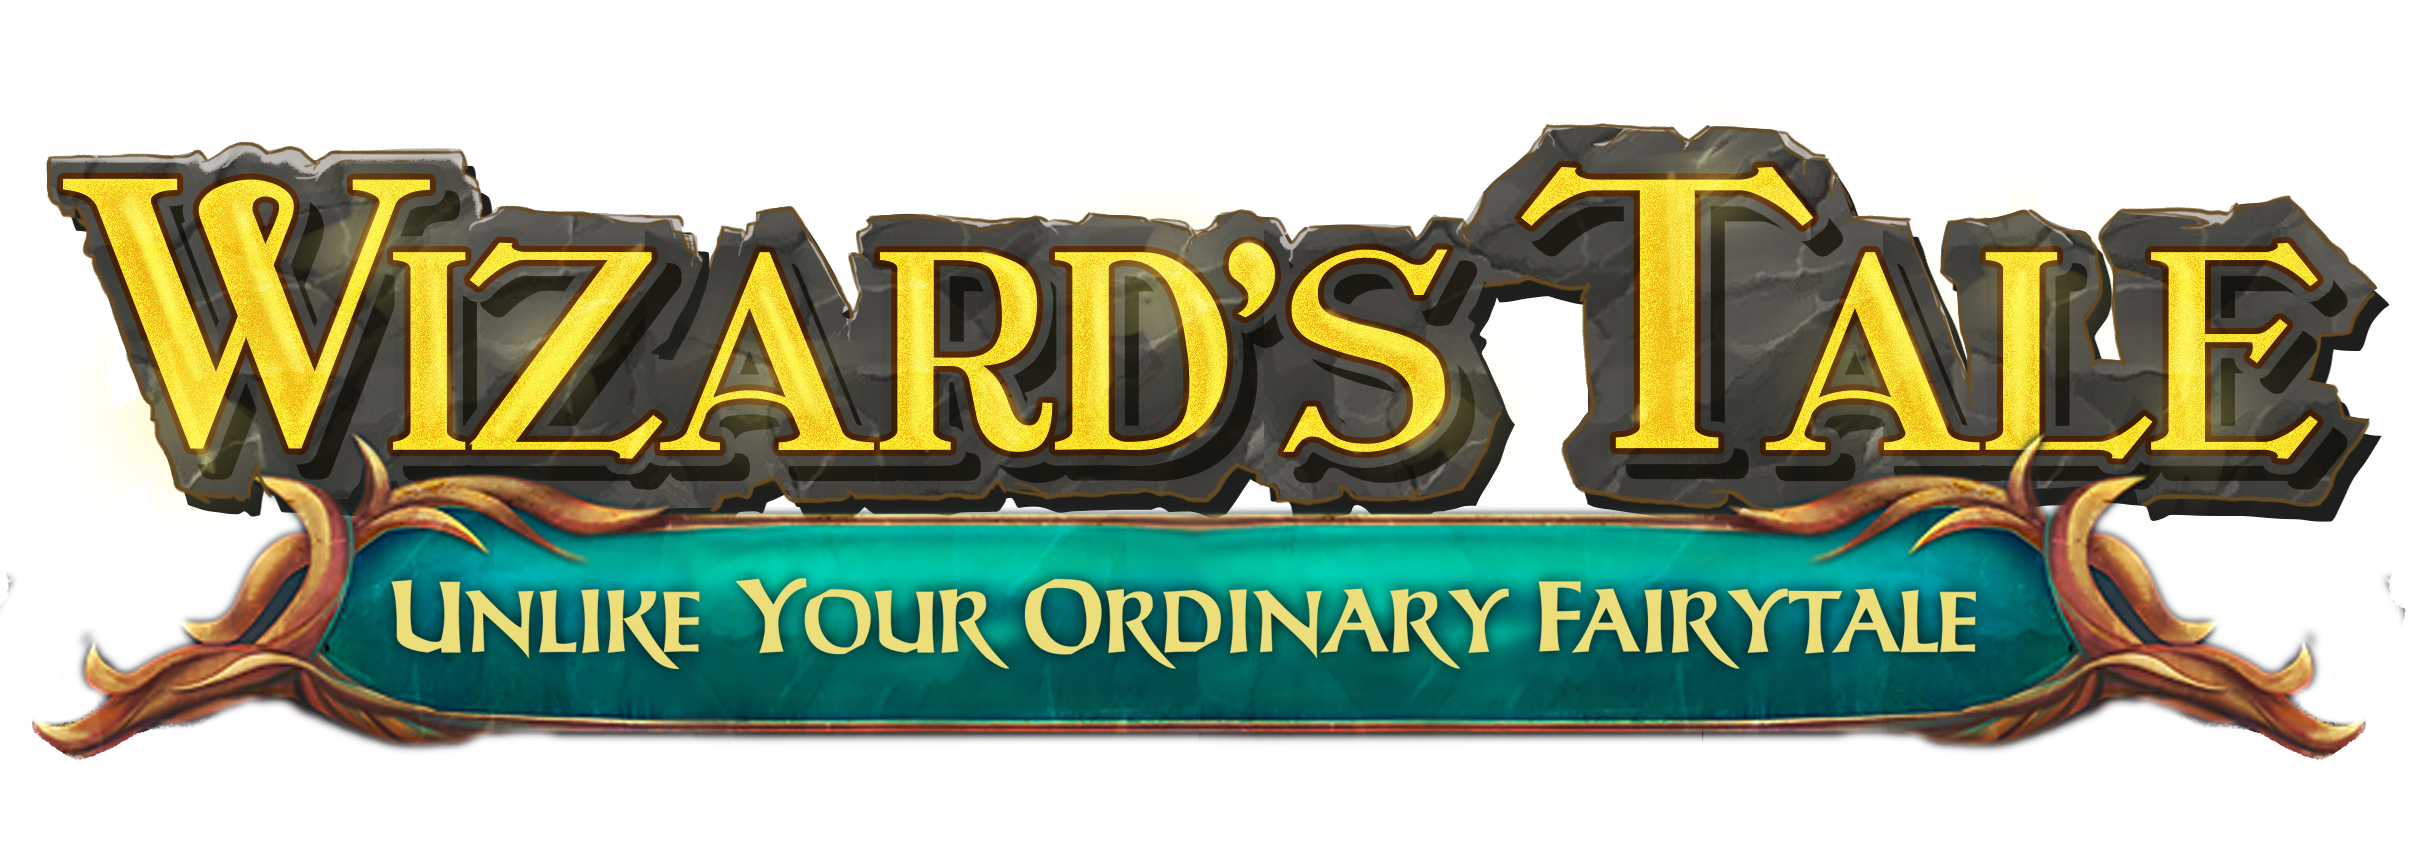 wizards_tale_1_1_1_1.png